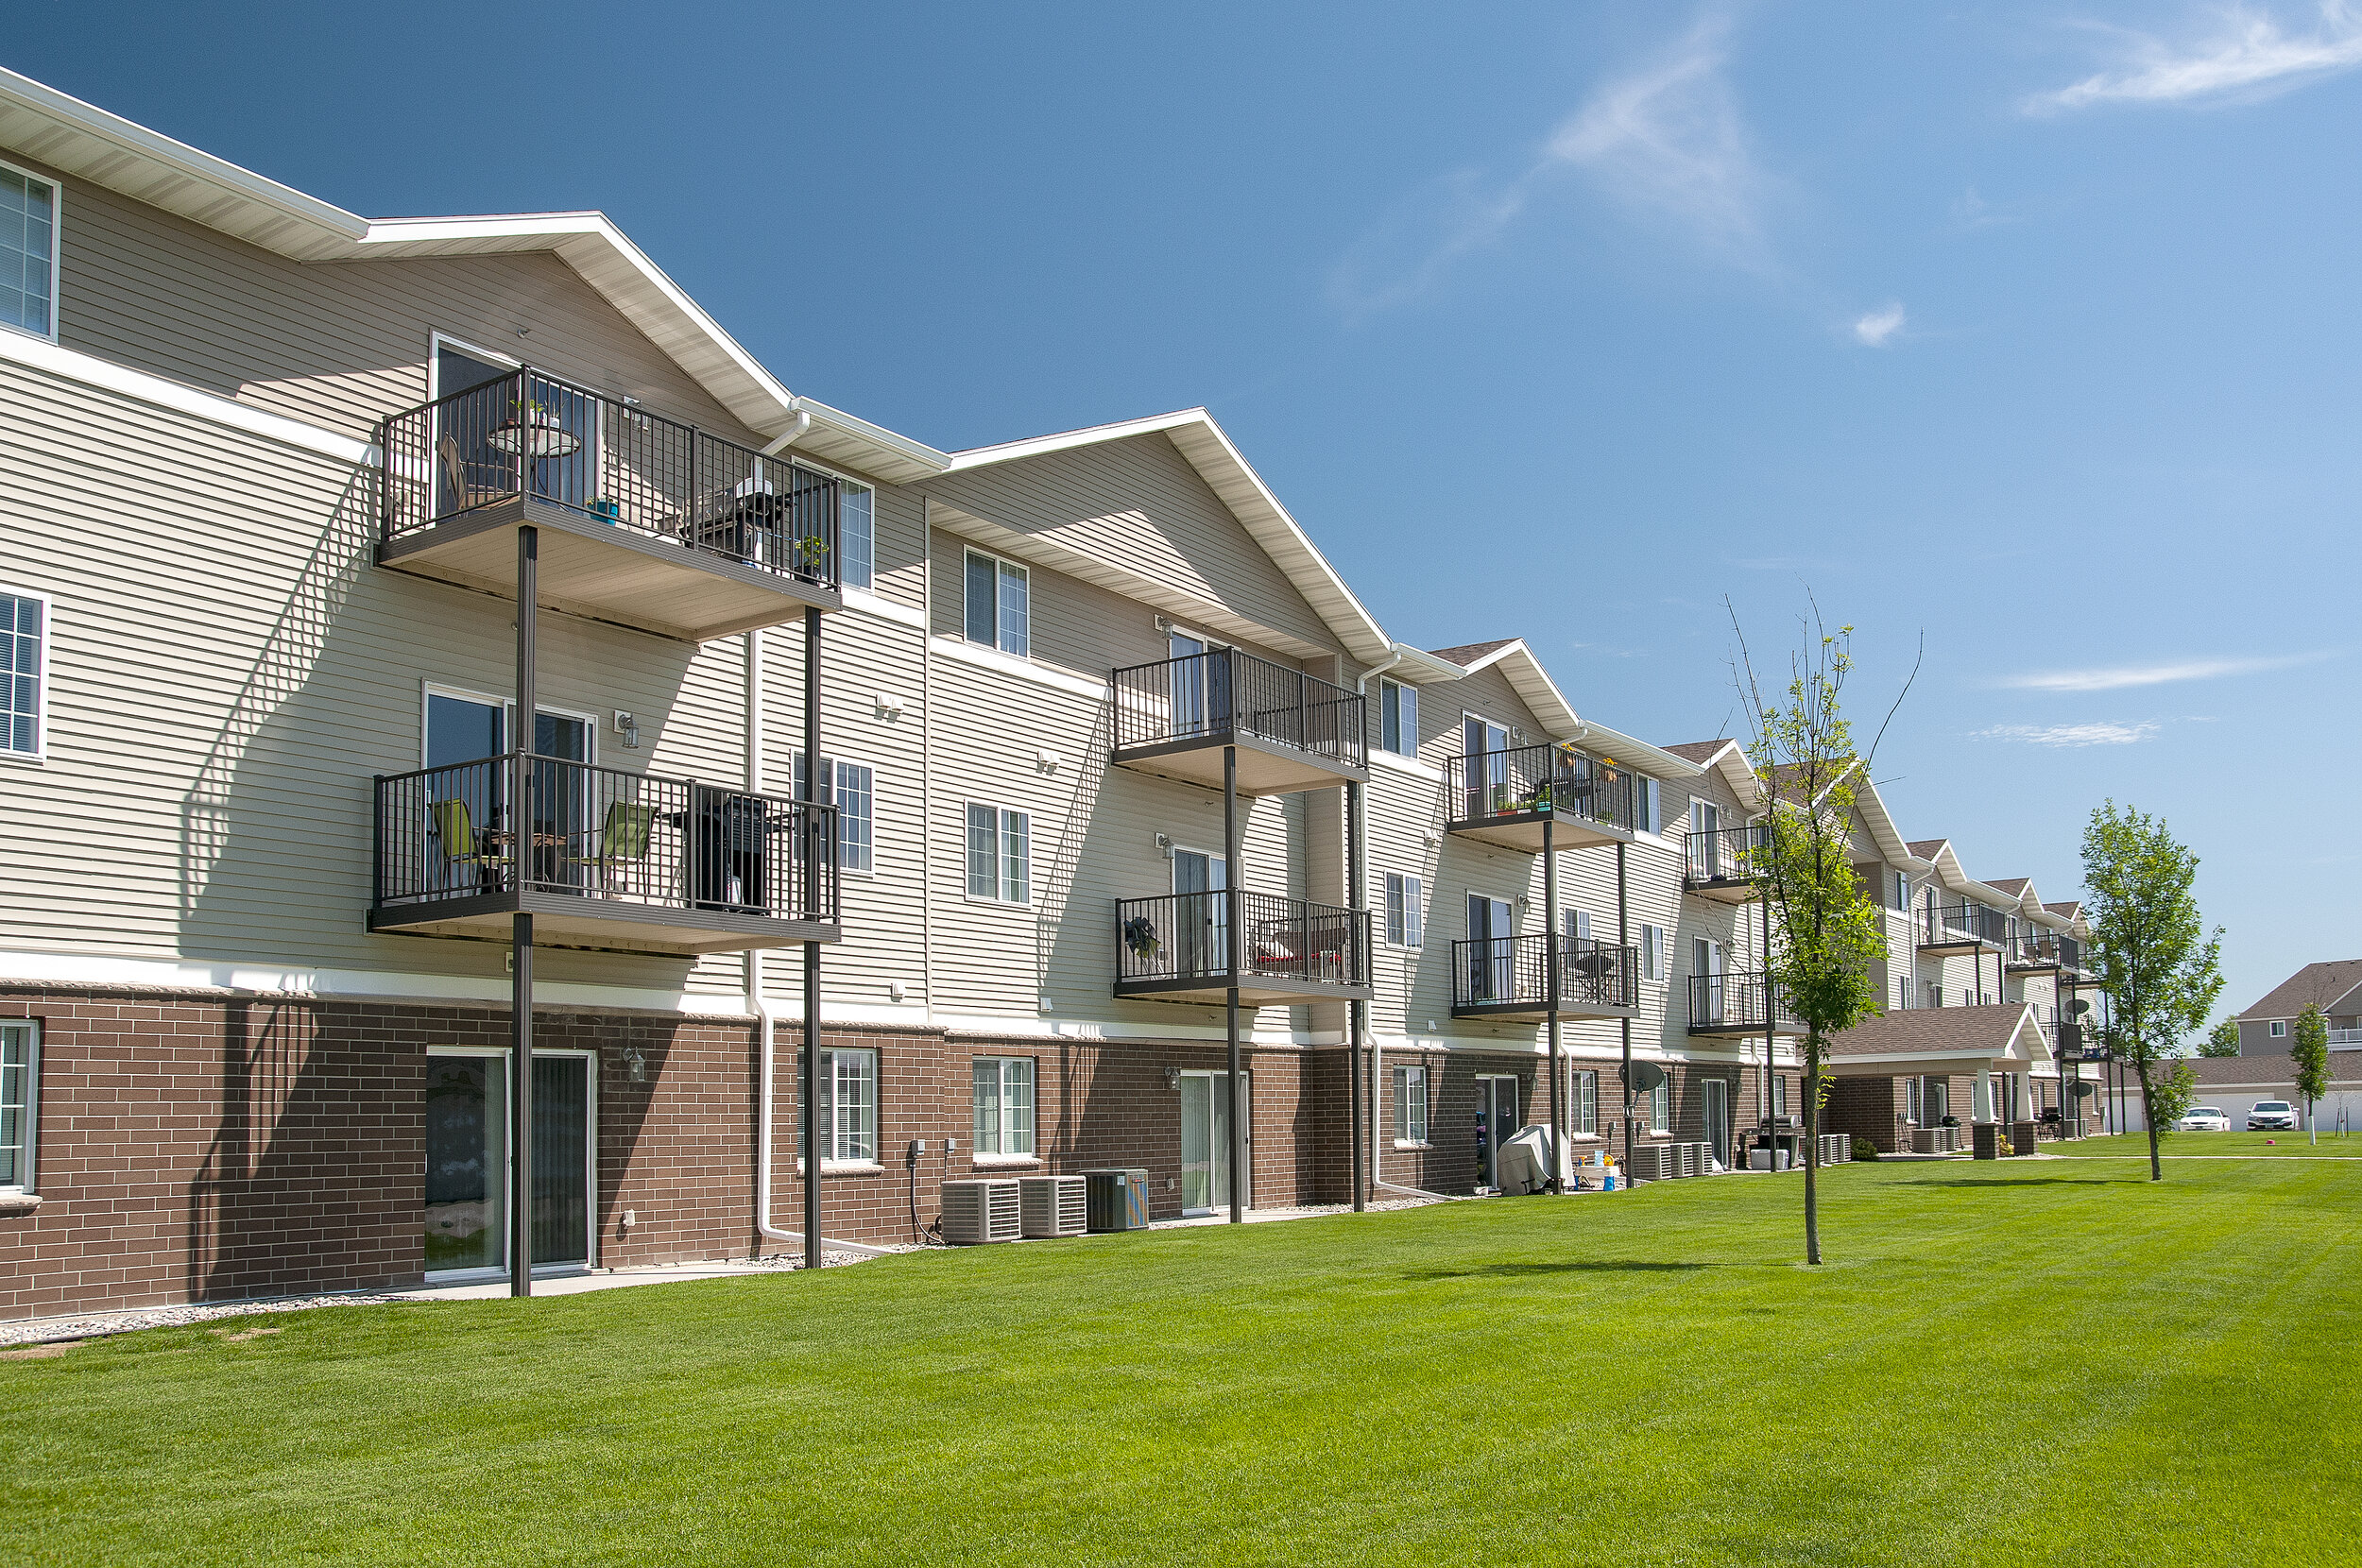 09 Balcony or Patio Included with Select Units.jpg